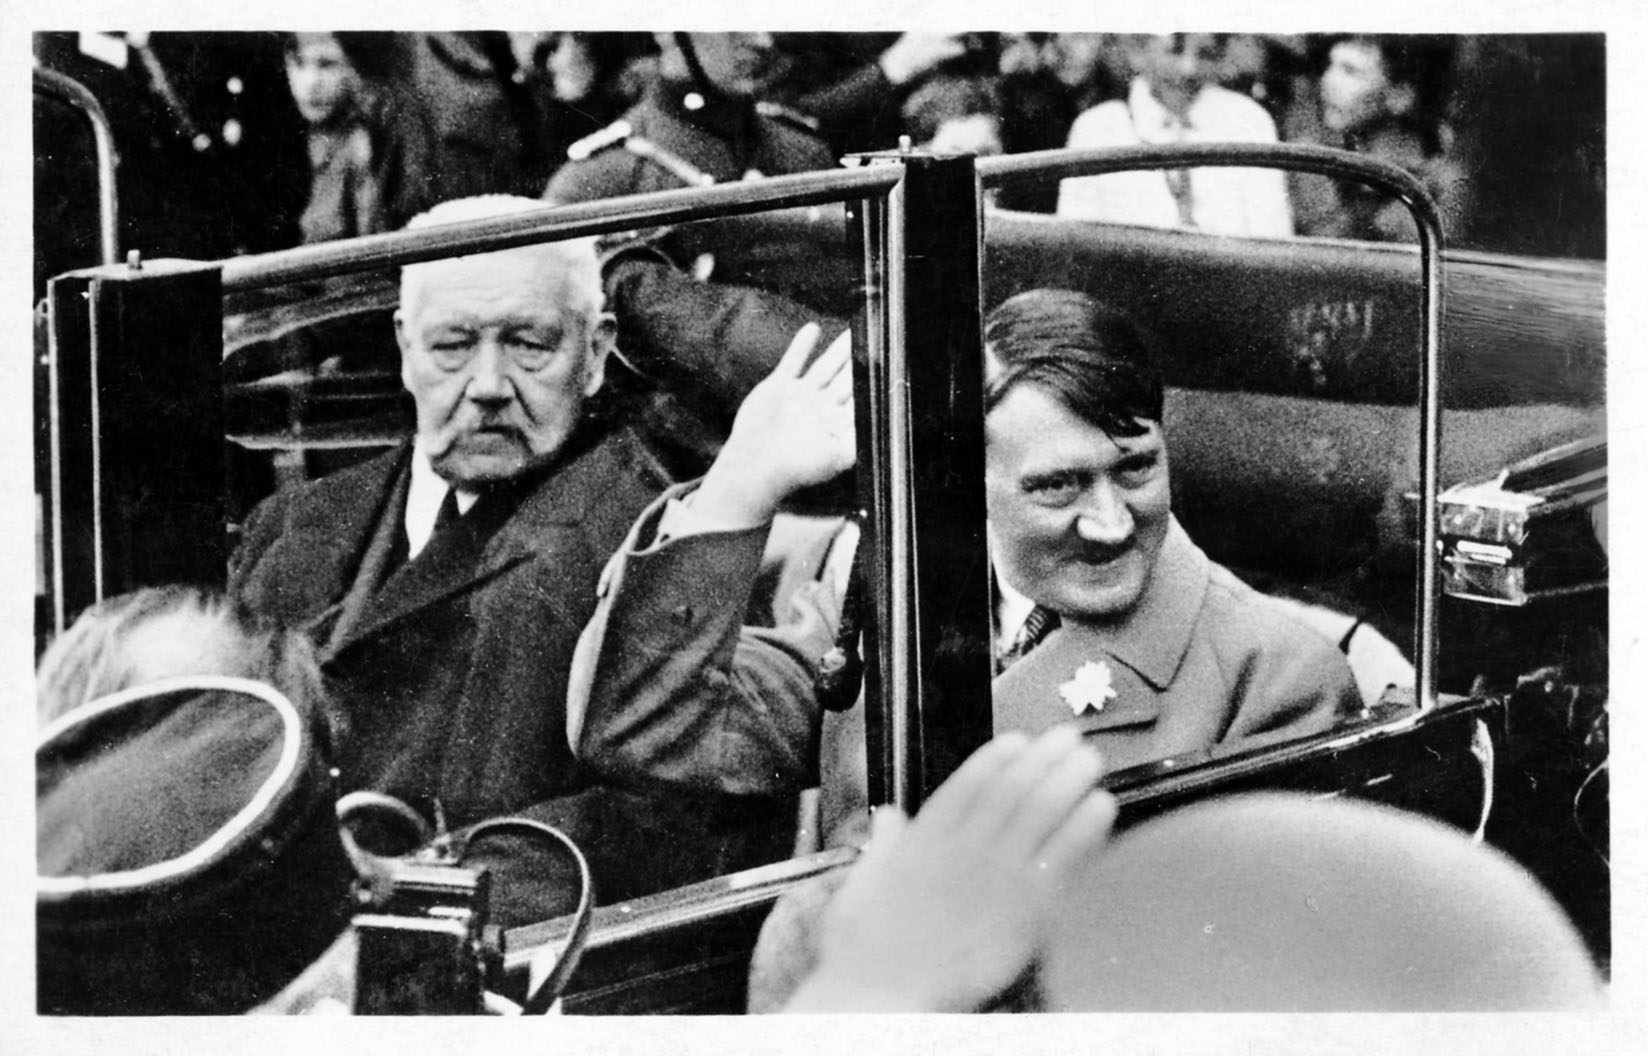 German President Paul von Hindenburg (1847 - 1934, left) in a car with Nazi leader and Chancellor of Germany, Adolf Hitler (1889 - 1945), on their way to a Labour Day youth rally at the Lustgarten, Berlin, 1st May 1933.